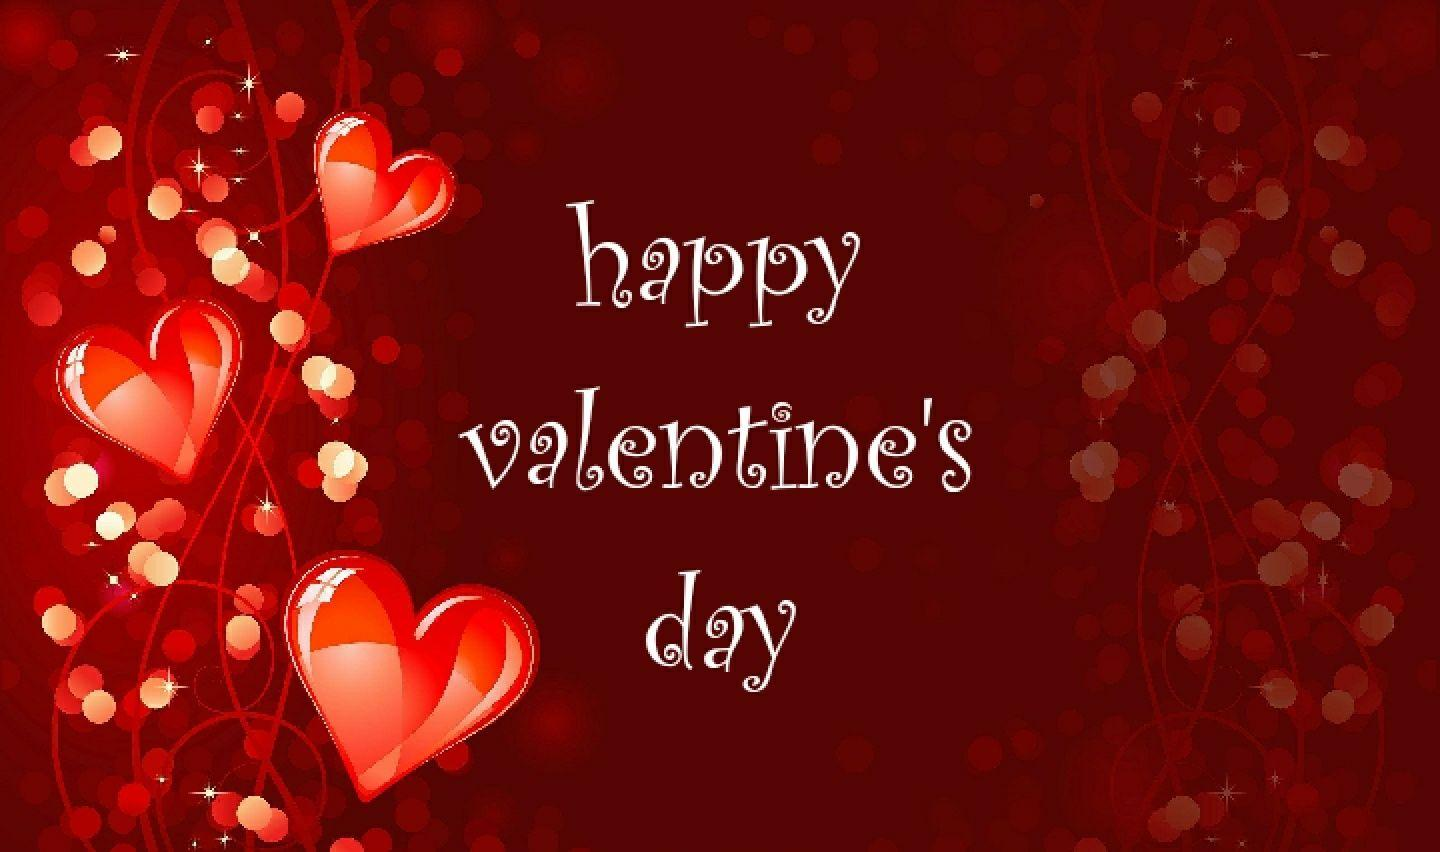 Christian valentine's day 2019 | Valentine Day Quotes